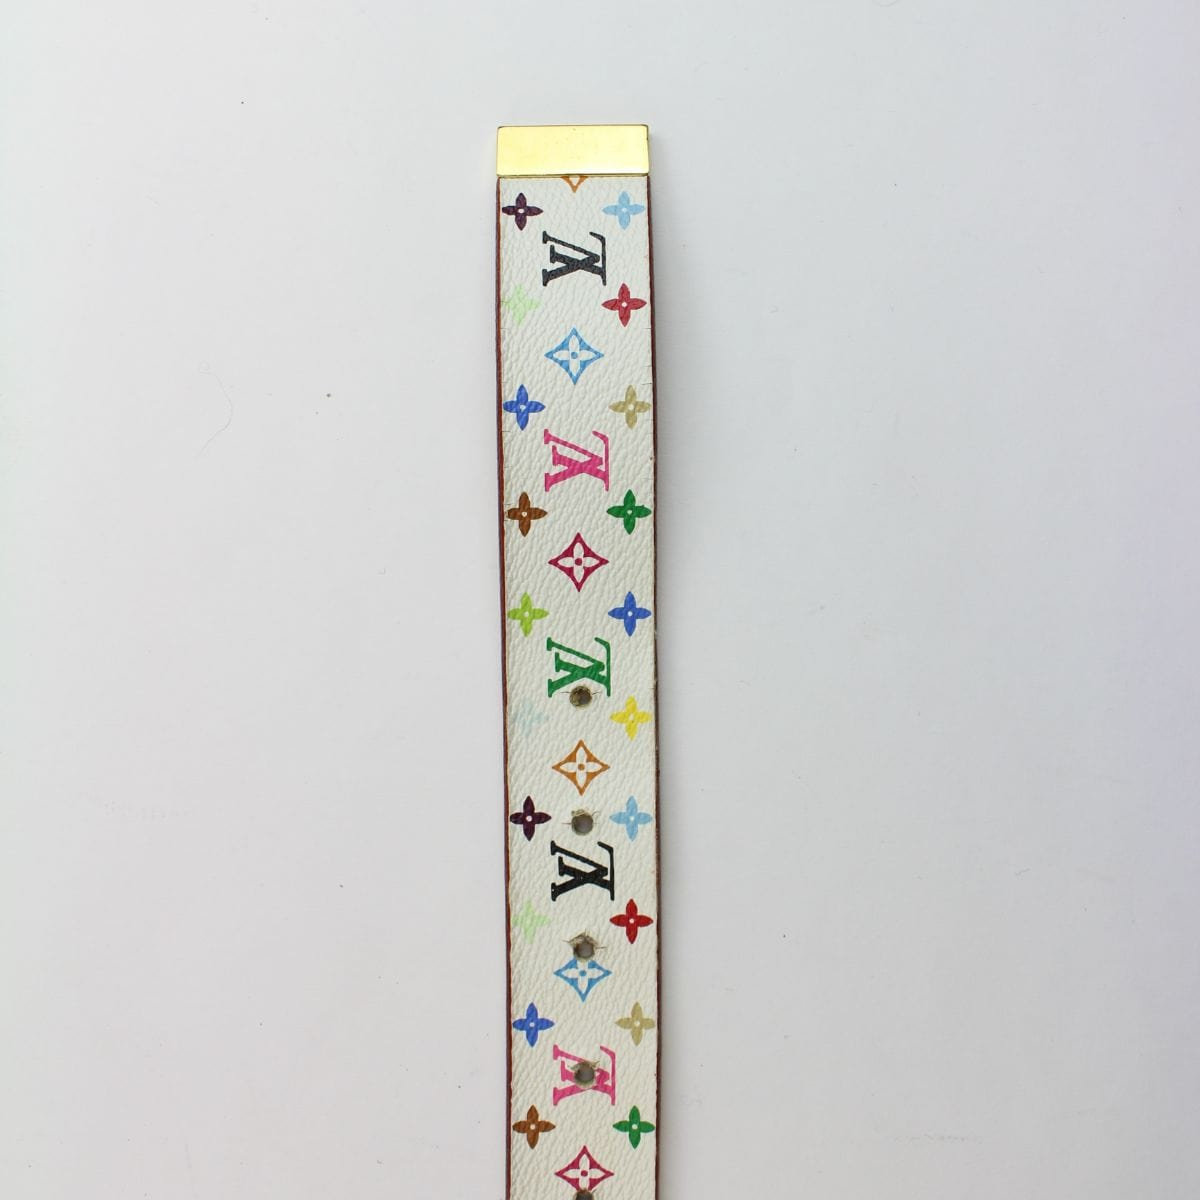 louis vuitton murakami white belt 2008 - SaruGeneral